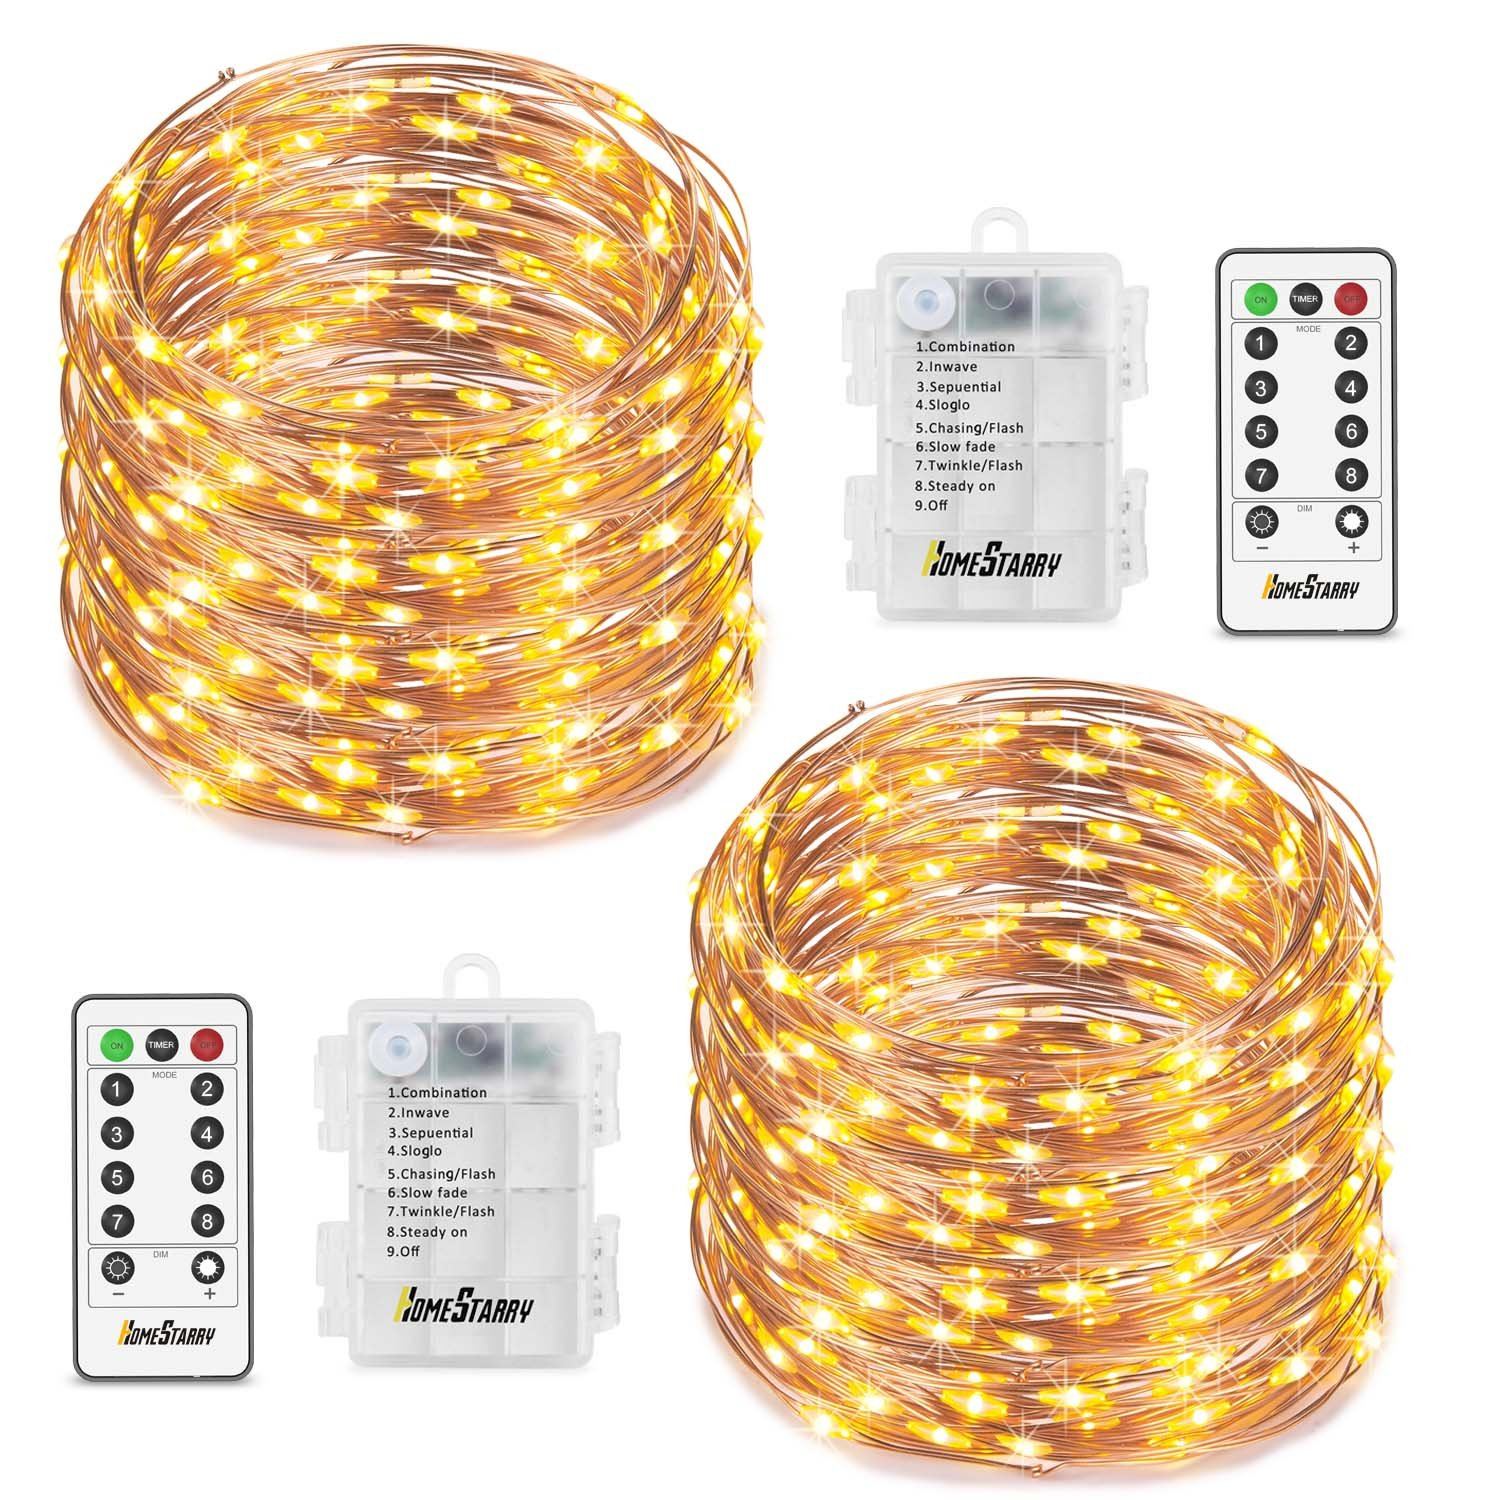 2 Set Fairy Lights 8 Modes String Lights Battery Operated Twinkling 50 LEDs Fairy String Lights 16.4FT Copper Wire Firefly Lights Remote Control for Bedroom Wedding Festival Decor(Warm White)